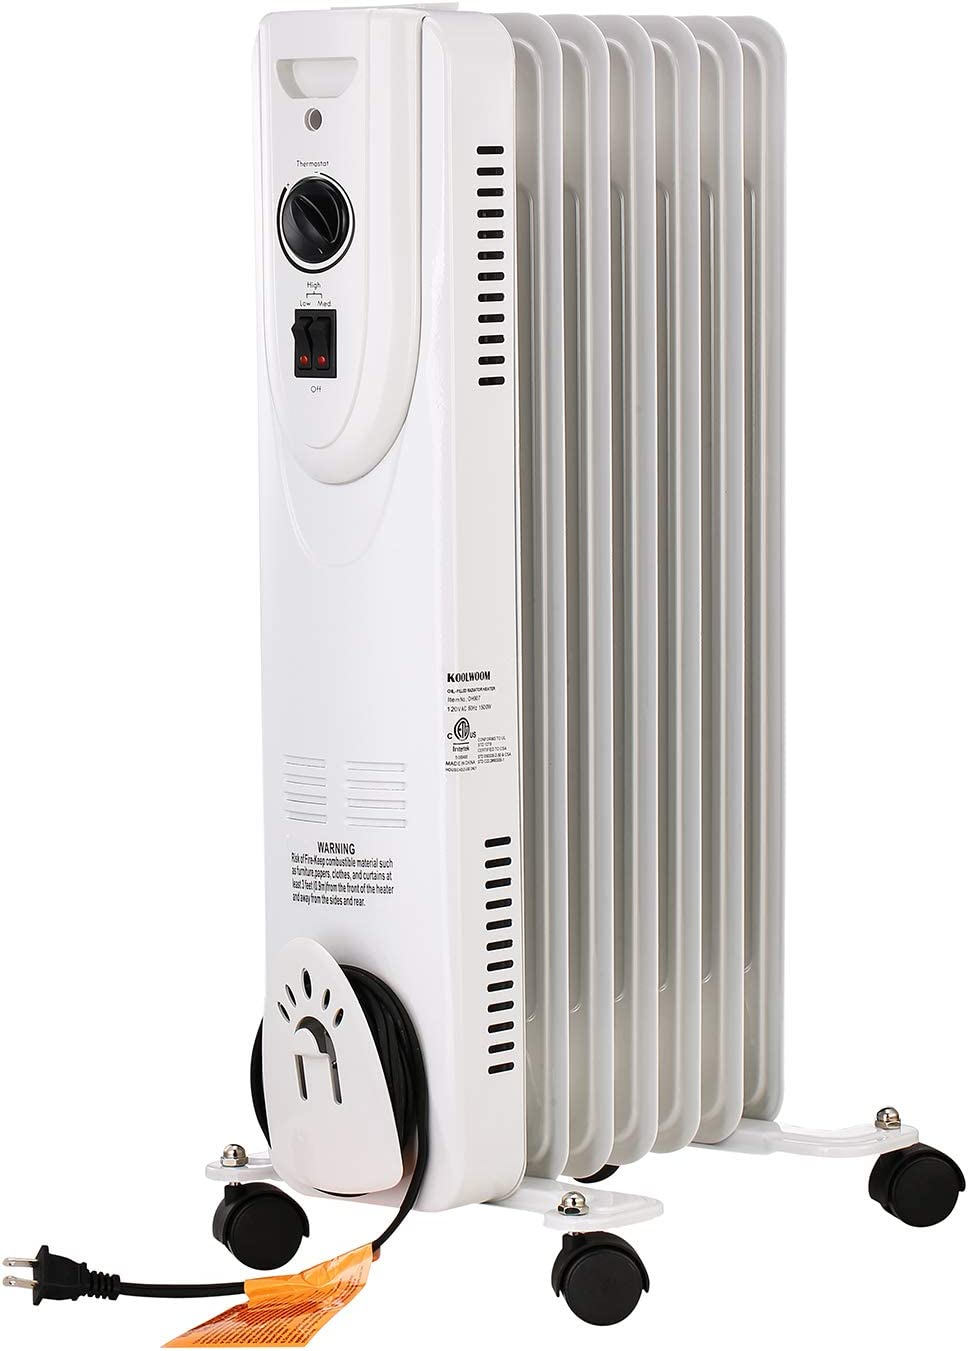 outdoor basic Electric Limited price sale Oil Al sold out. Filled Radiator Heater Adjustabl with